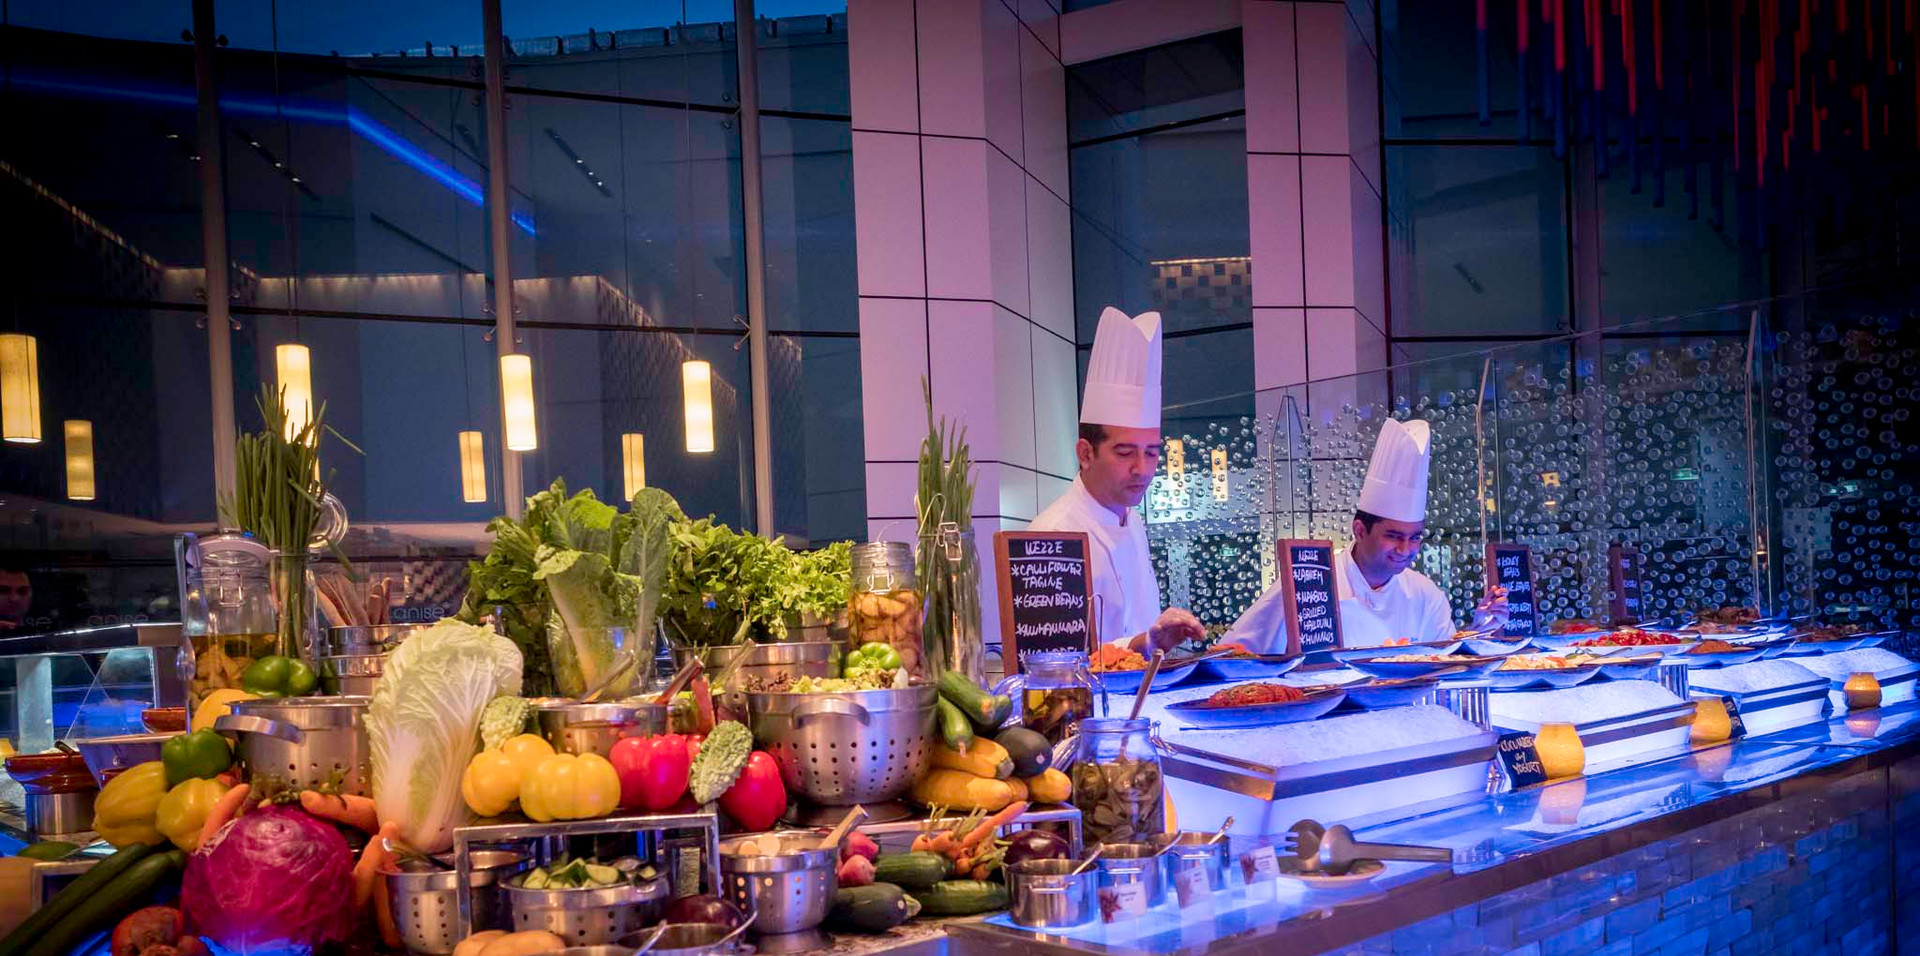 Anise Restaurant at InterContinental Dubai Festival City